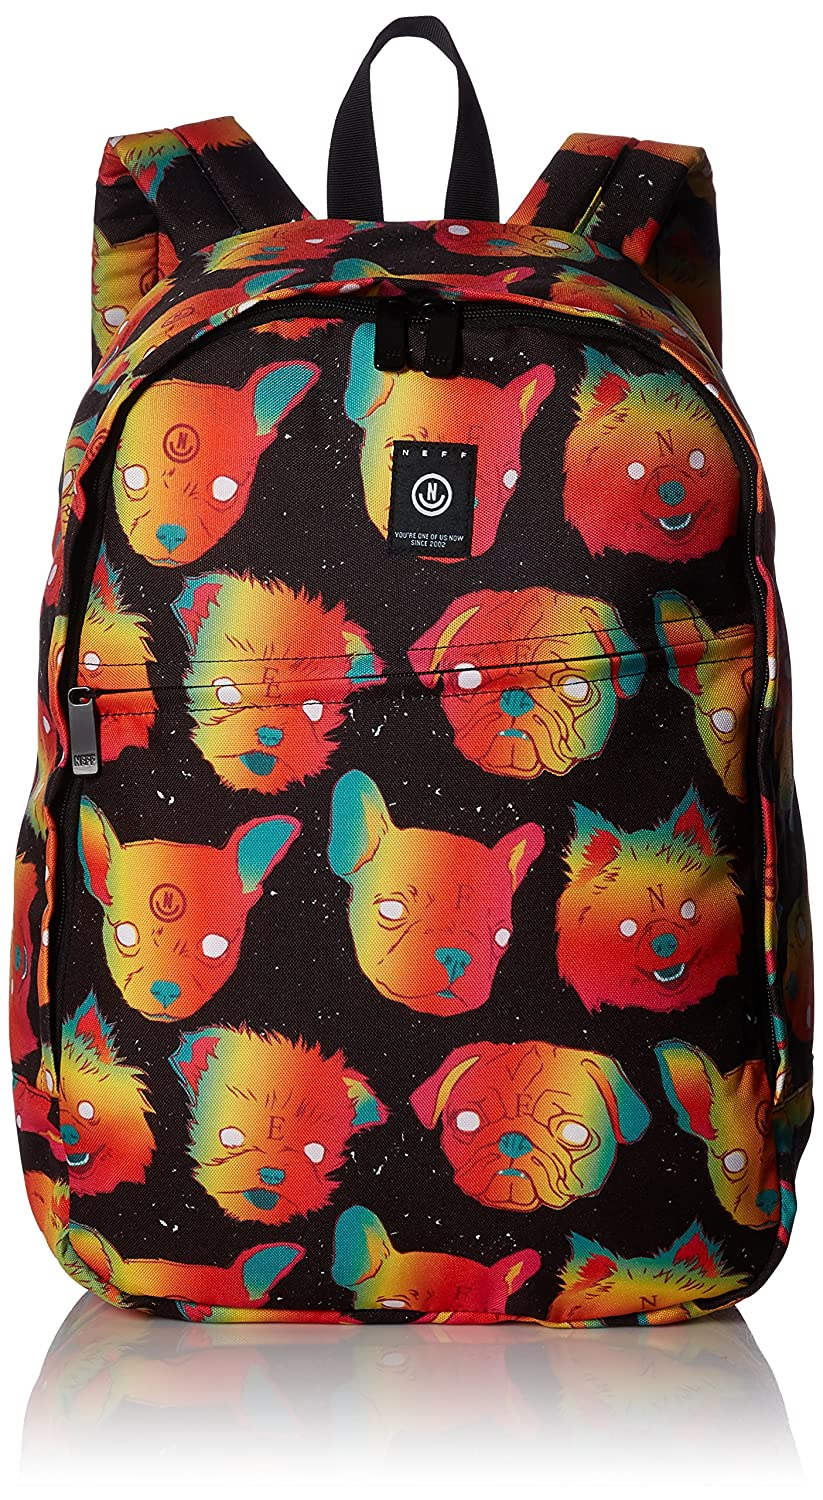 Amazon.com: neff Mens Daily Backpack-Affordable, Laptop Sleeve, School Bag, k Nine, One Size: Clothing